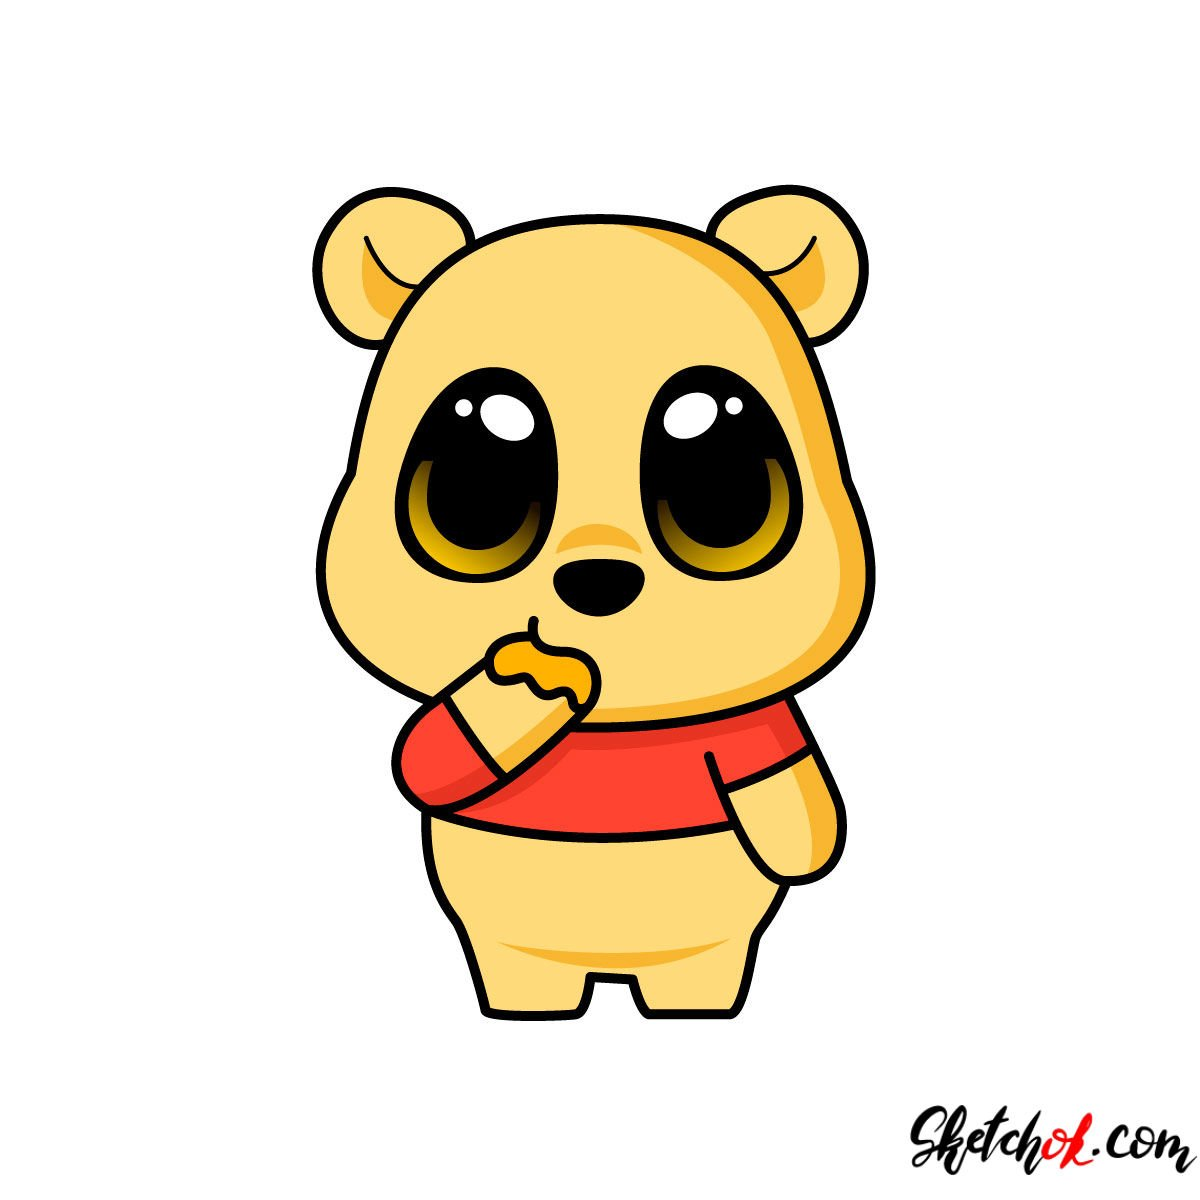 How to draw chibi Pooh Bear